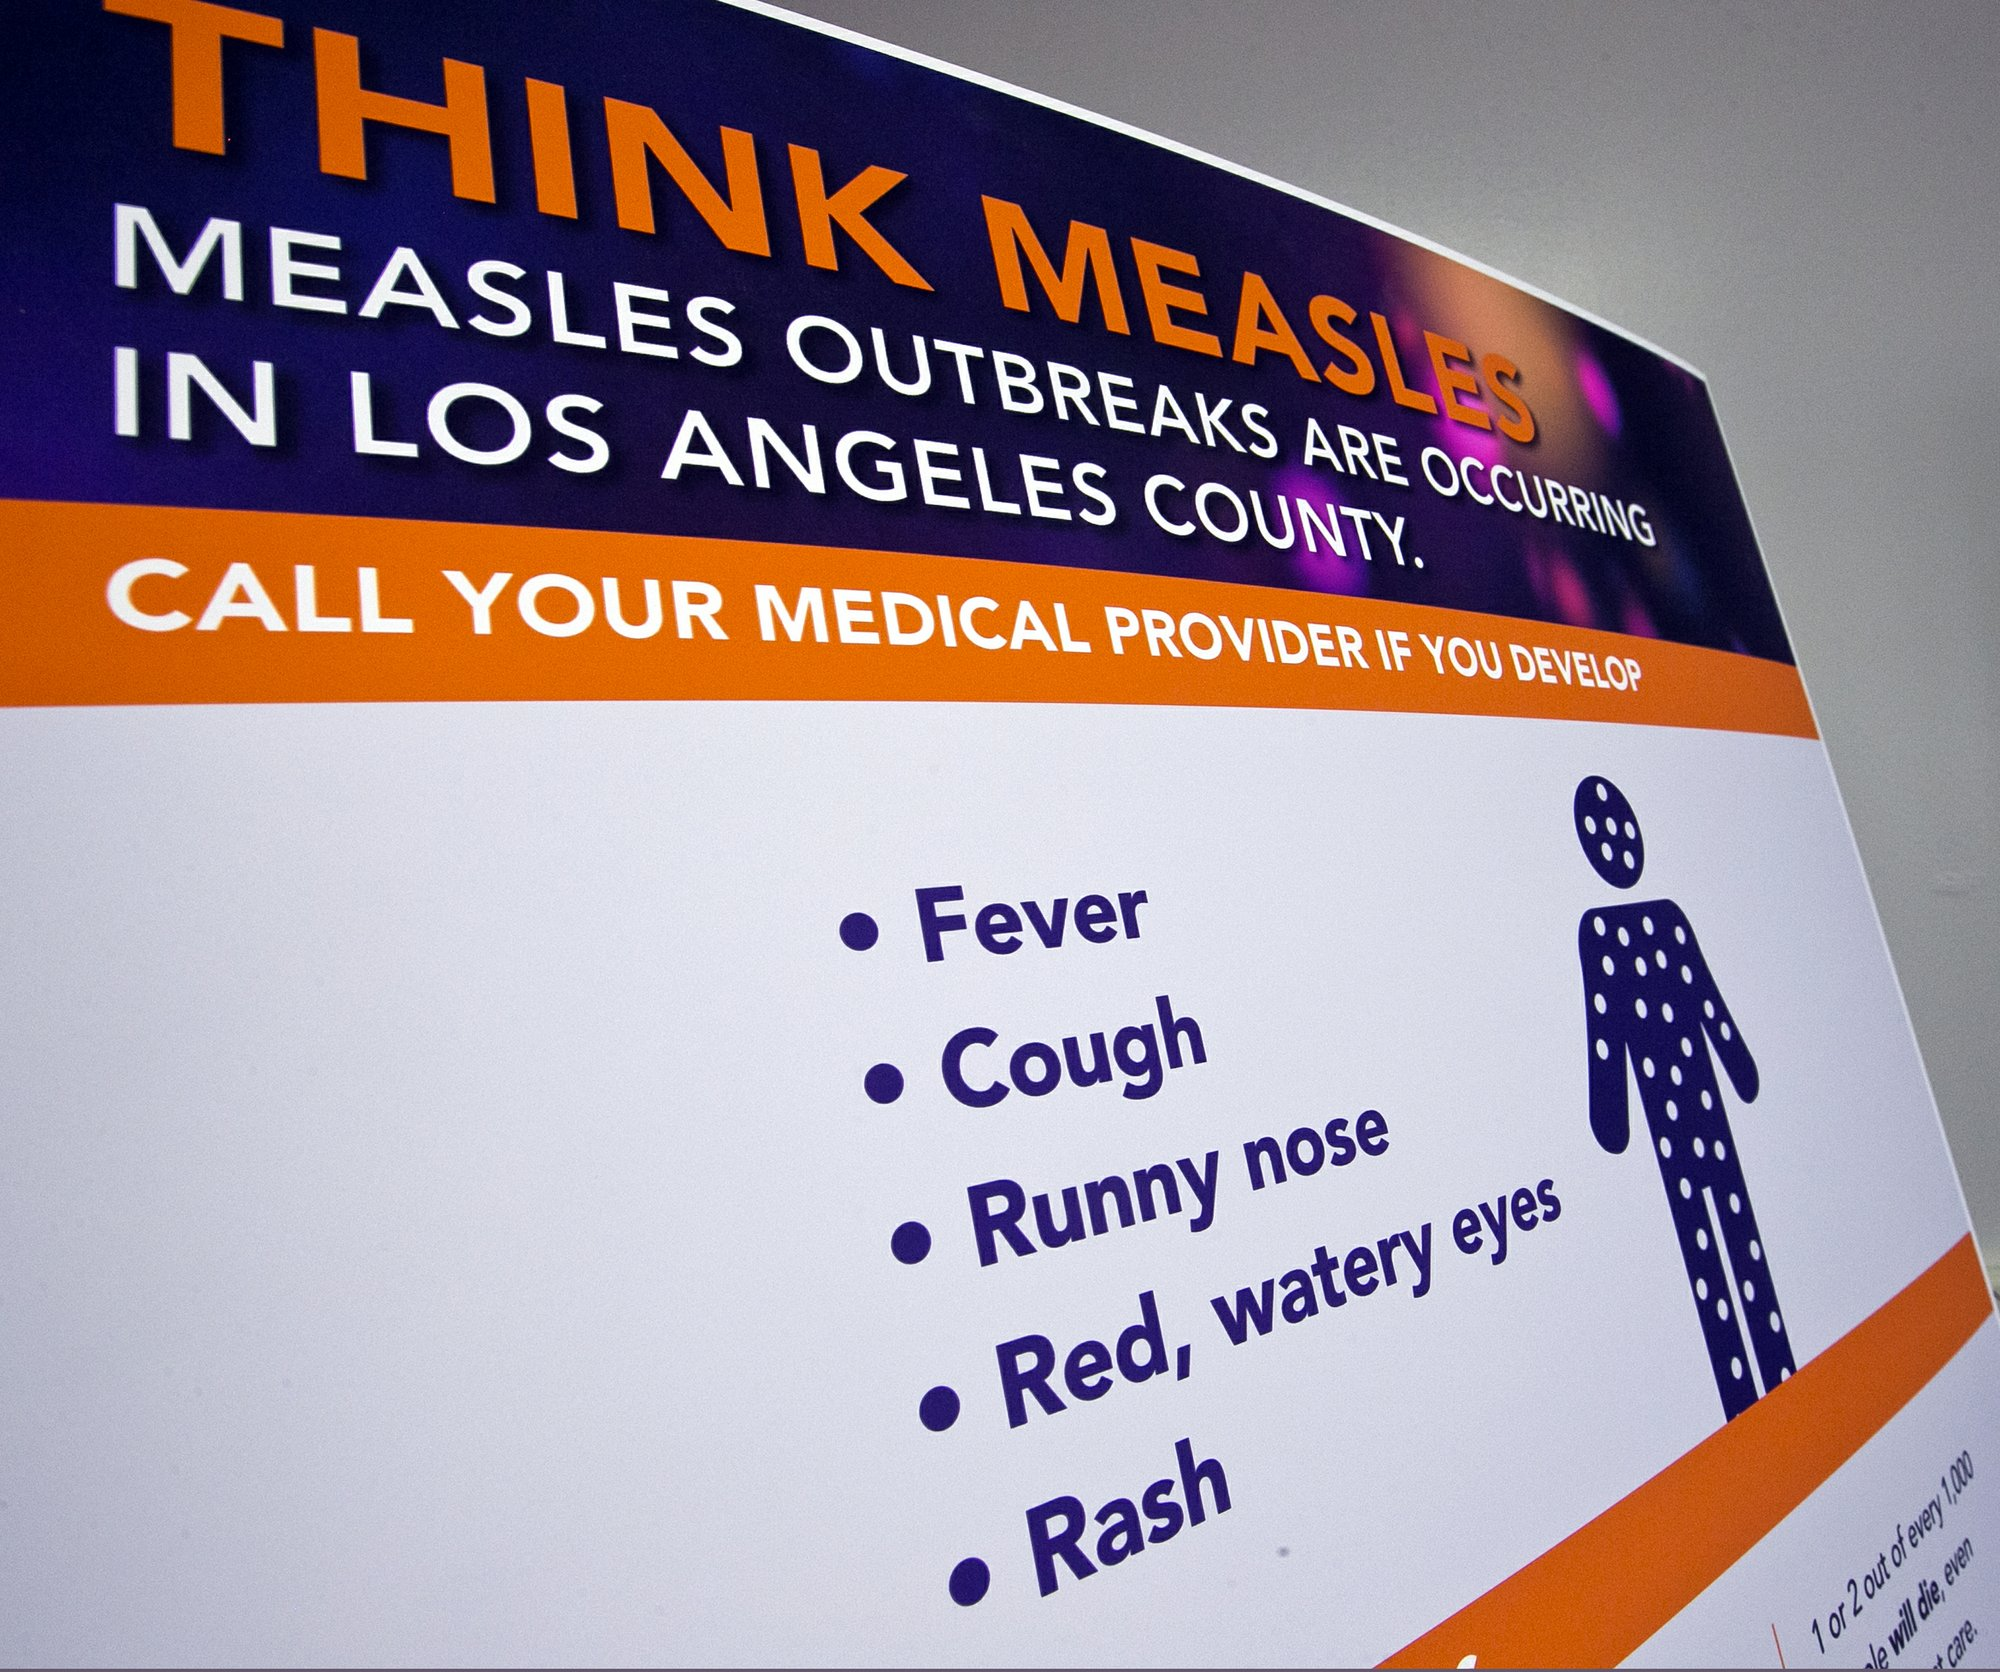 US measles count up to 555, with most new cases in New York